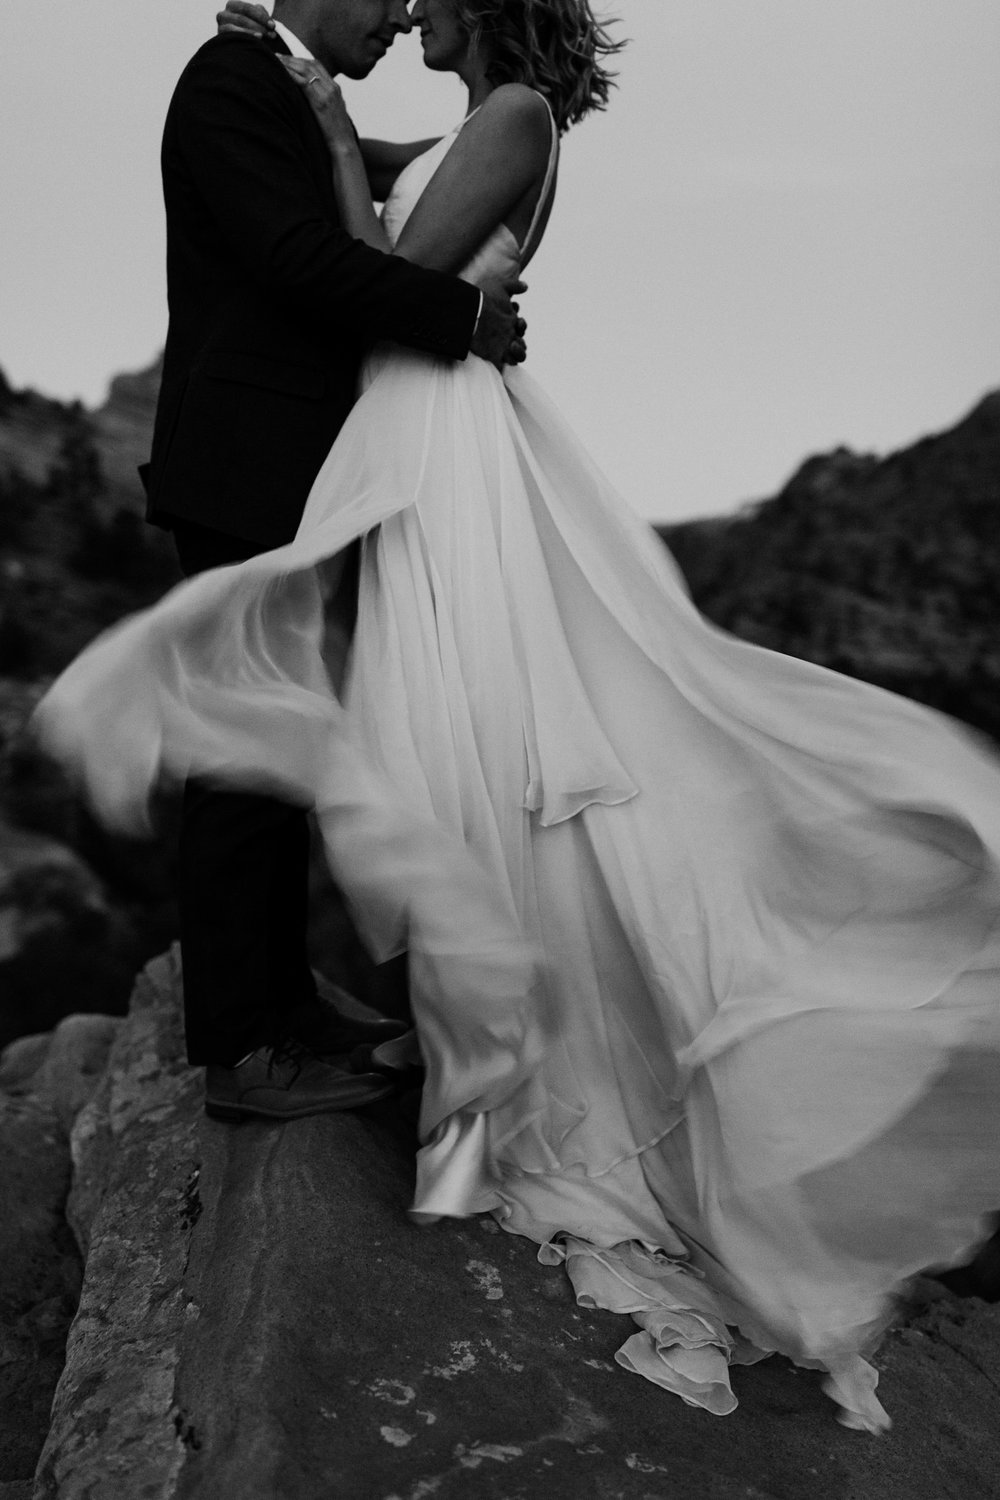 zion-national-park-wedding-144.jpg